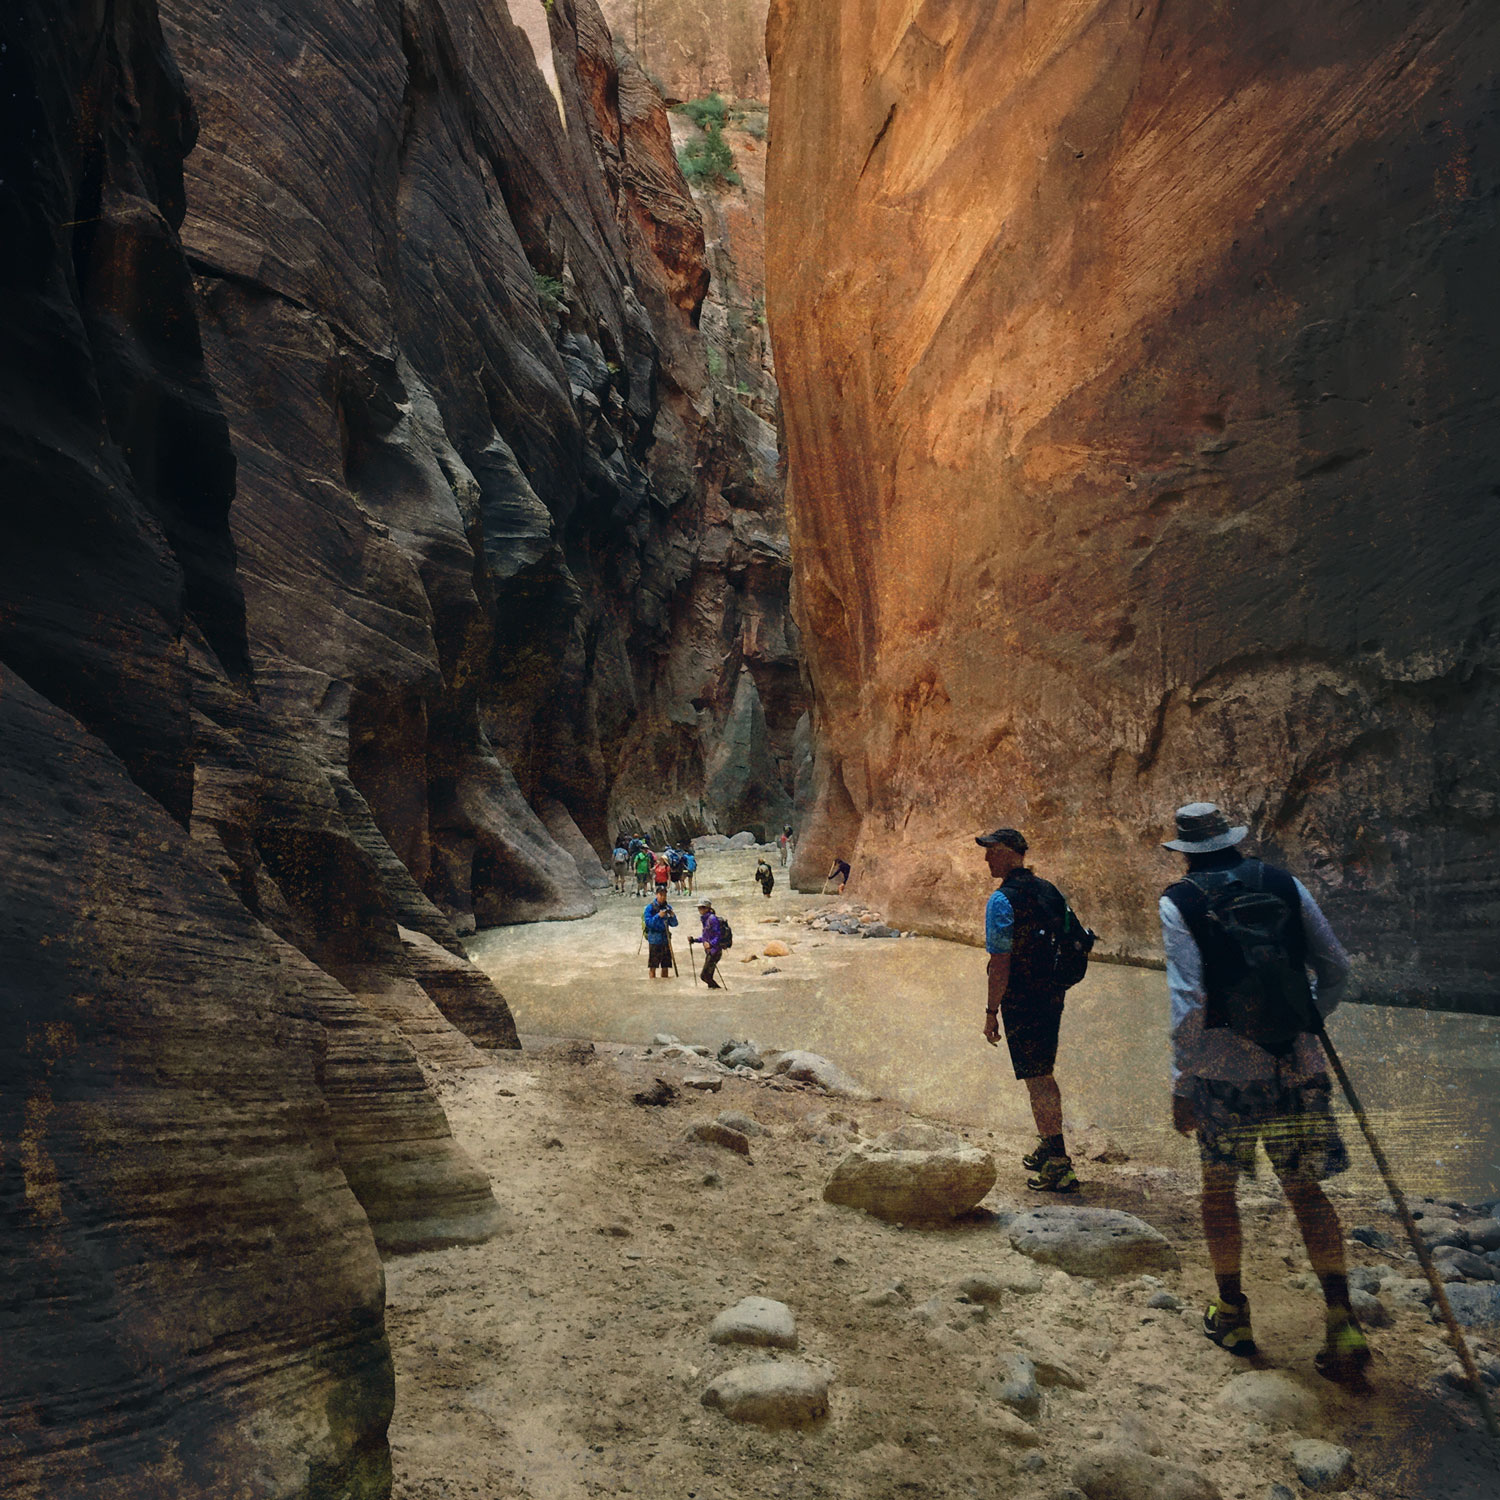 ZION - THE NARROWS